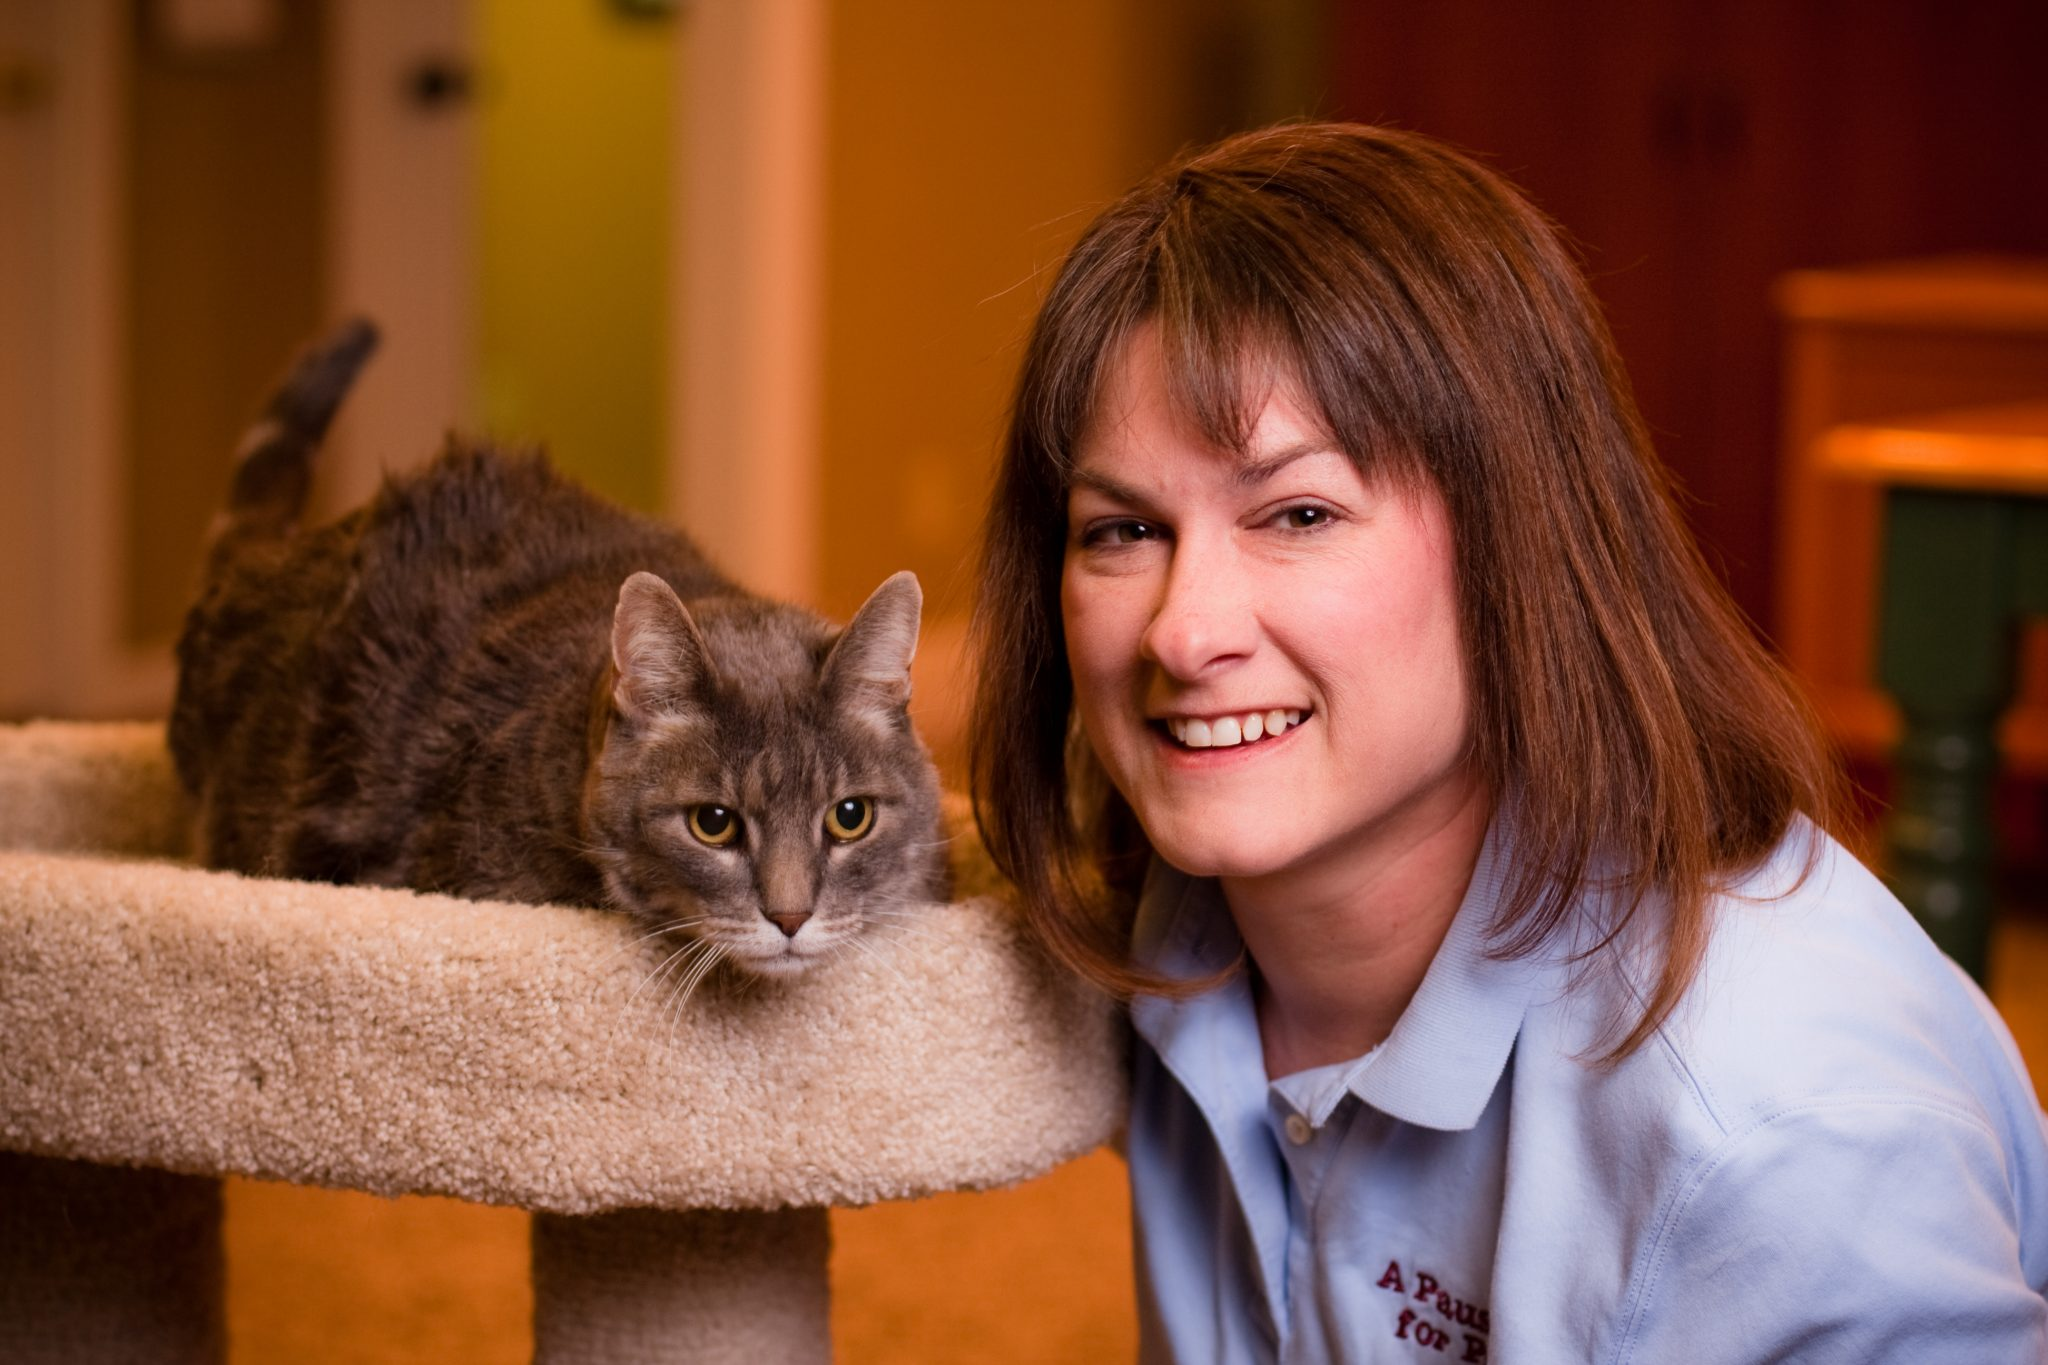 [Case Study] Pet Sitter Audited By The State Twice And Told Two Different Things!